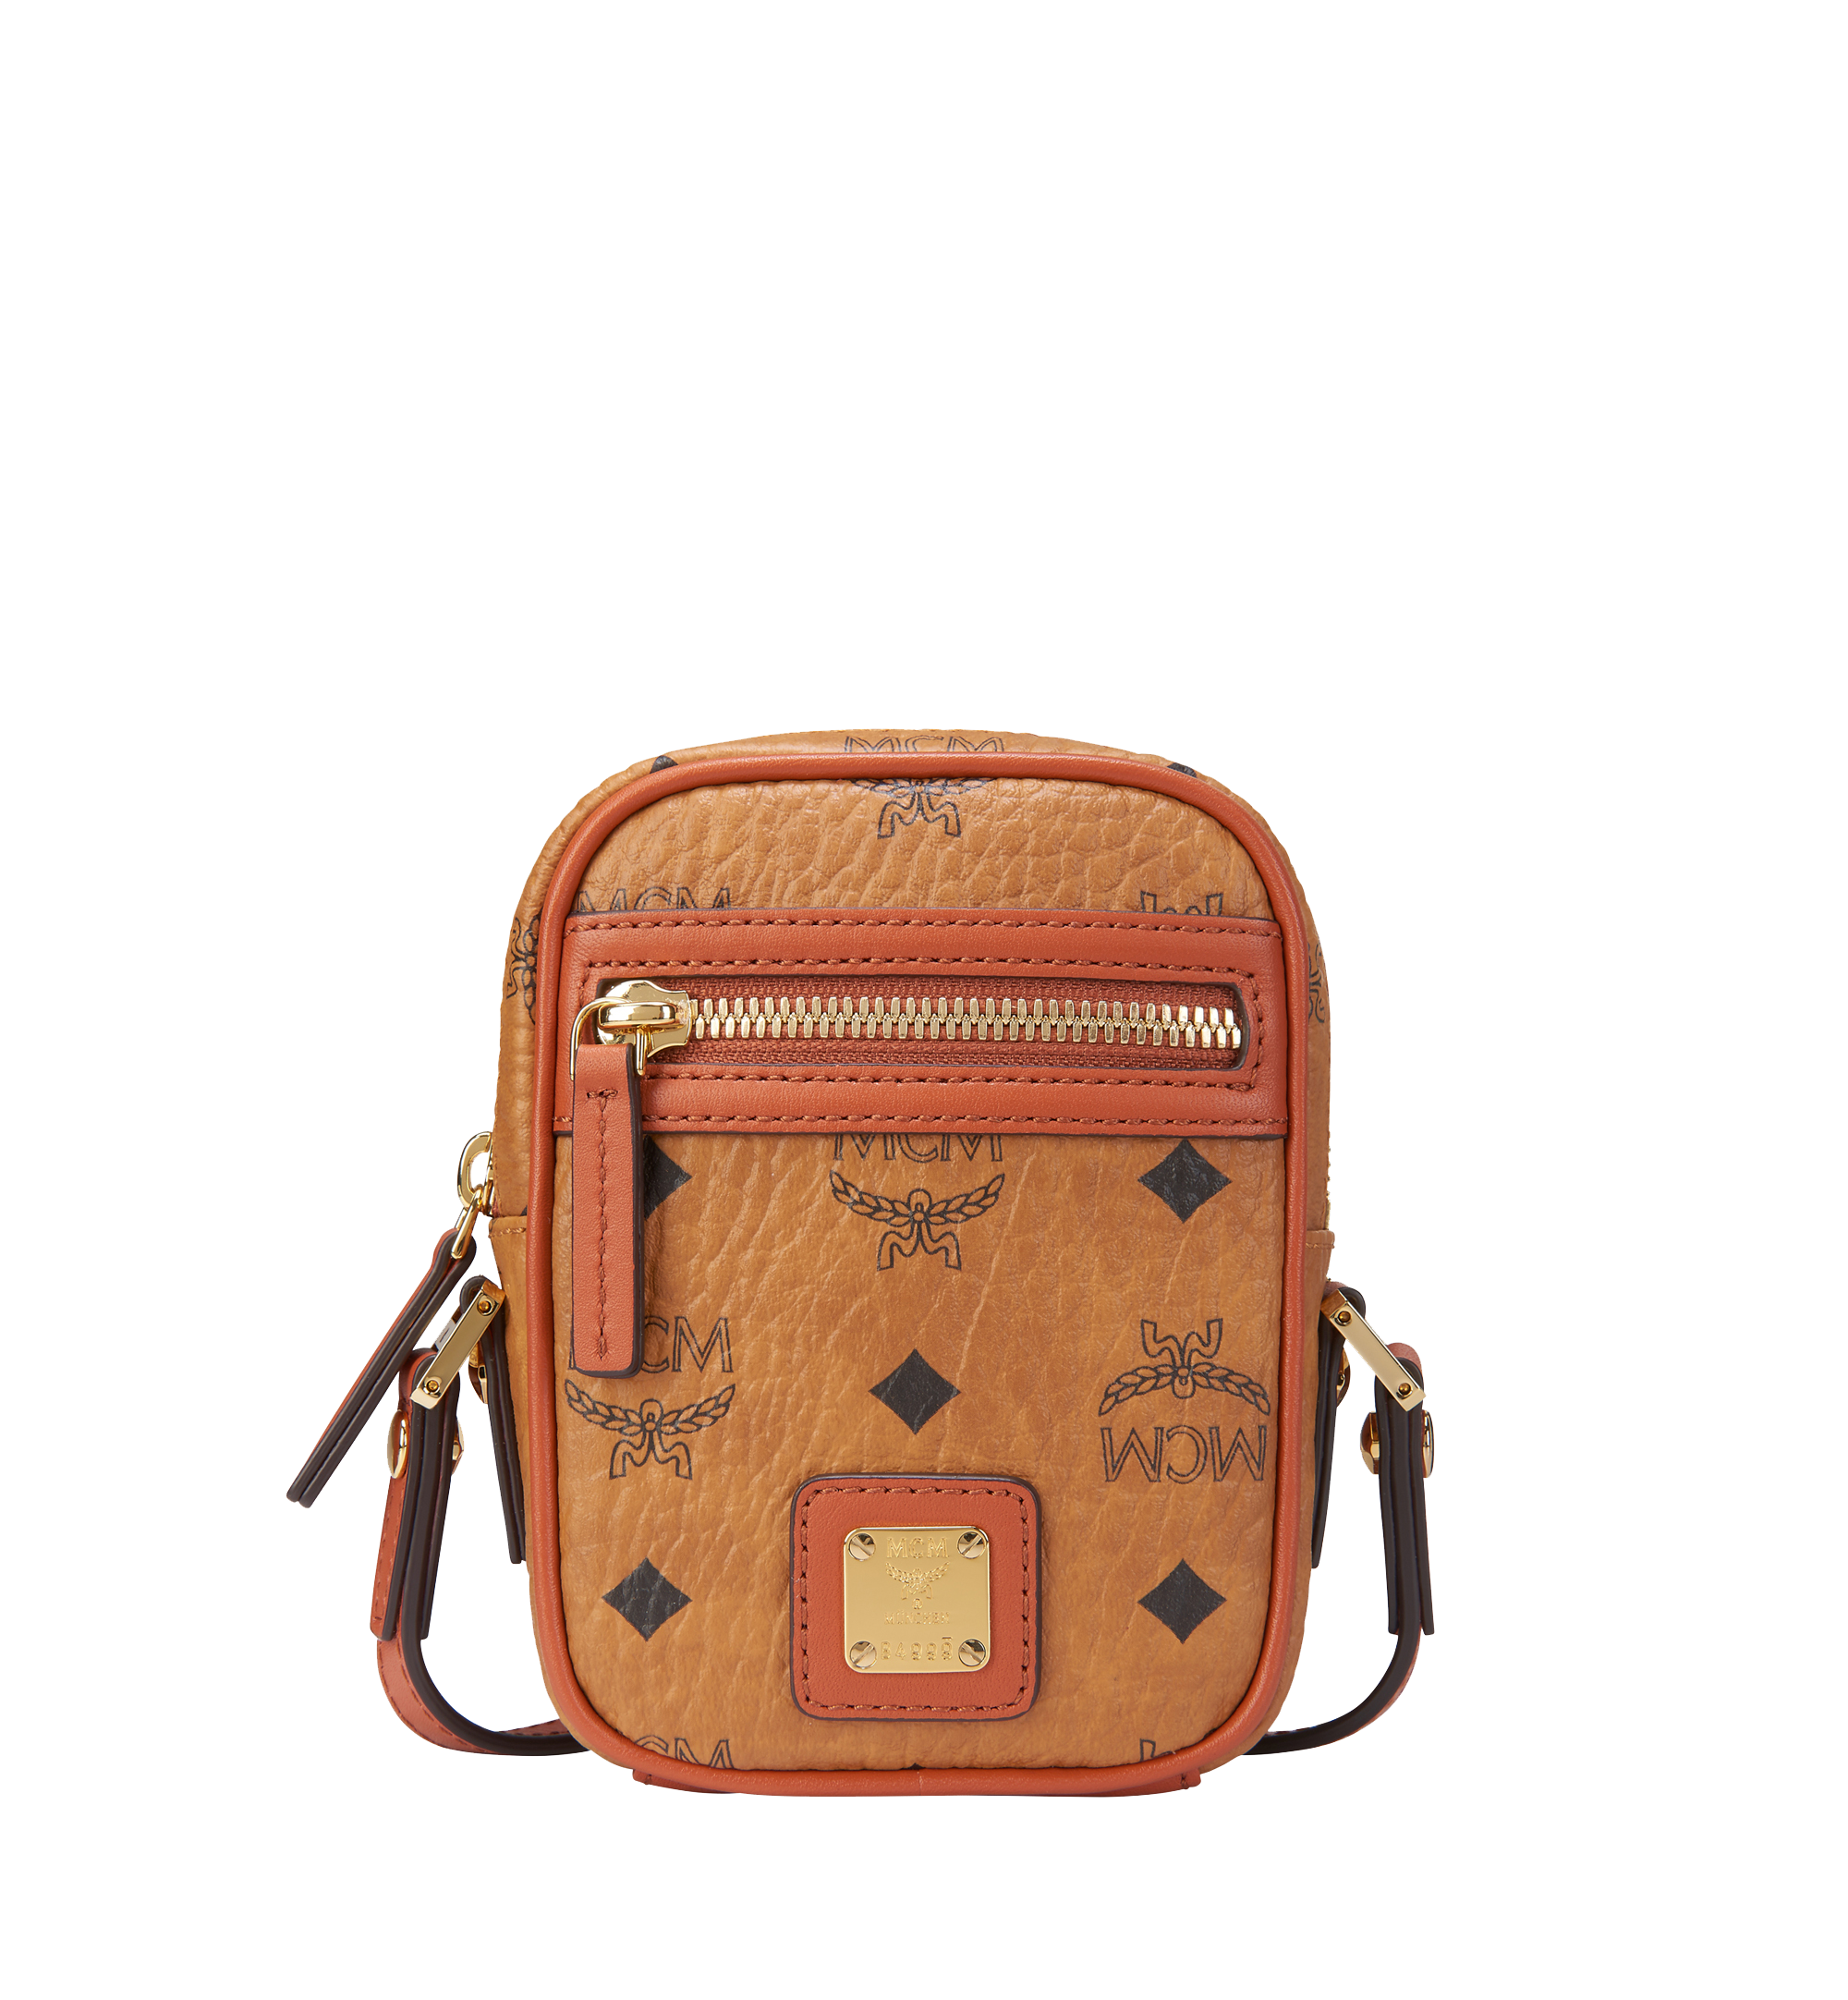 93059bc18a5 Mcm Mini Vintage Crossbody Bag - Brown In Co